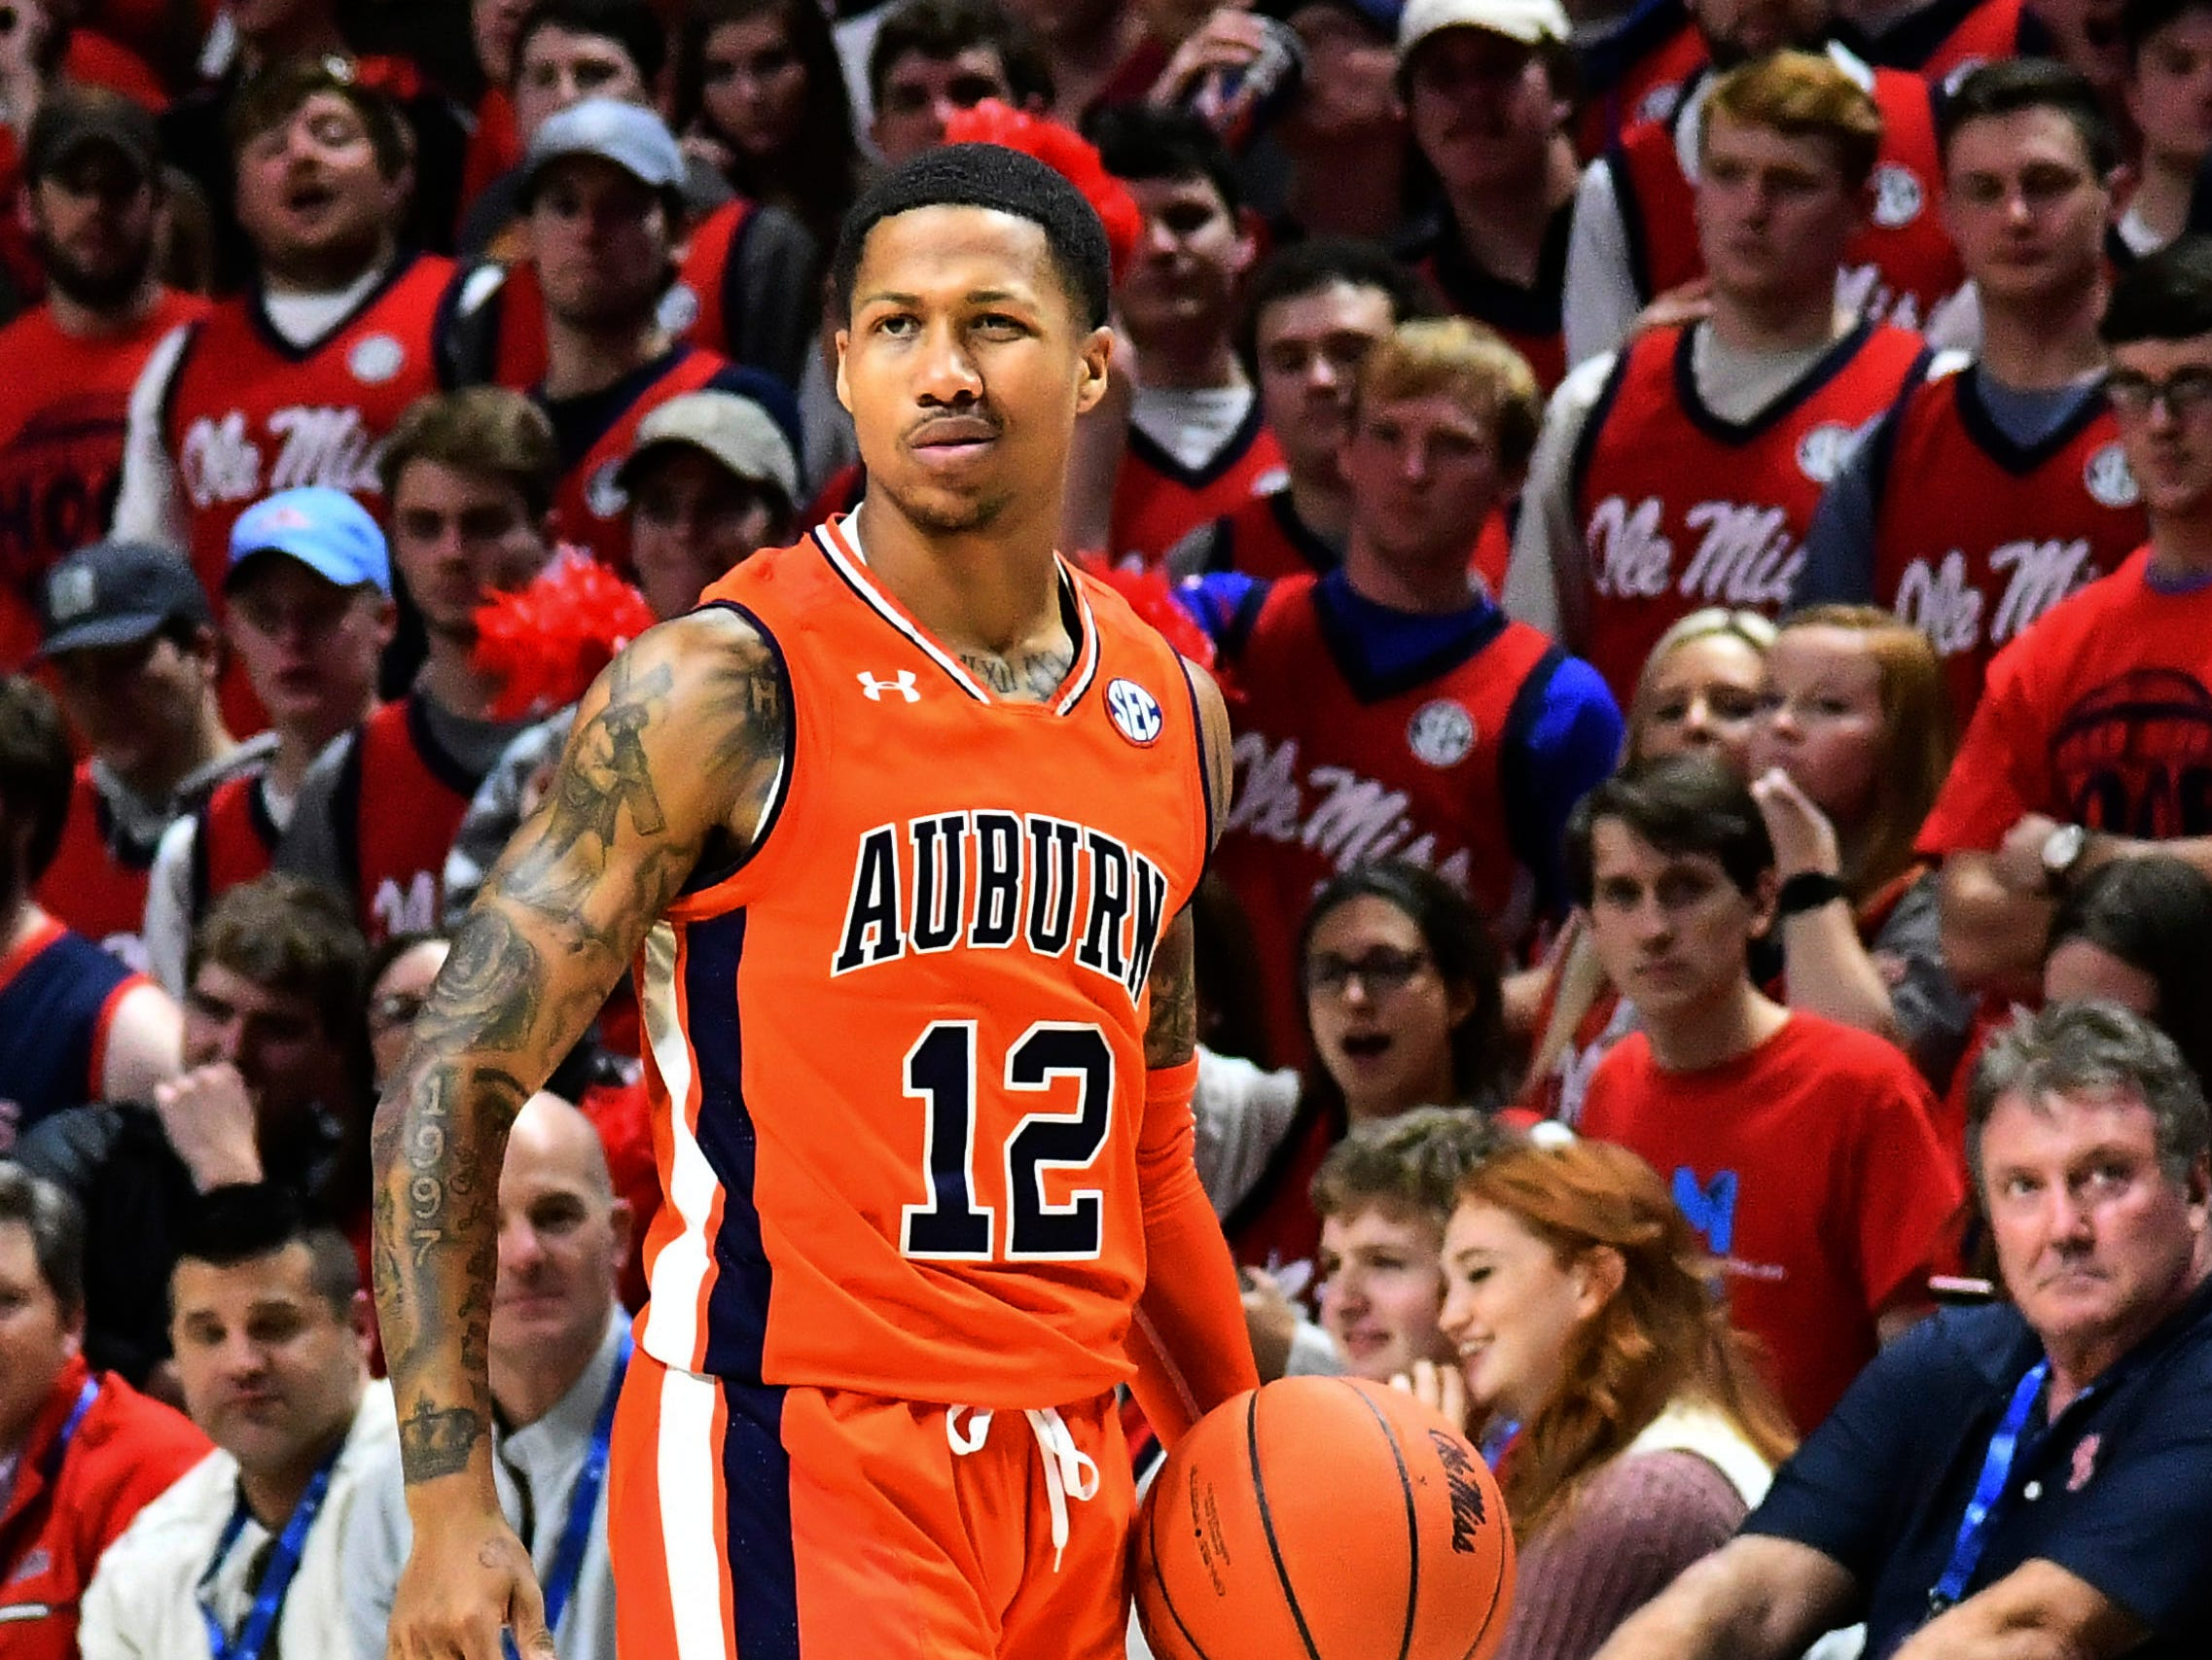 Jan 9, 2019; Oxford, MS, USA; Auburn Tigers guard J'Von McCormick (12) handles the ball against the Mississippi Rebels during the second half at The Pavilion at Ole Miss. Mandatory Credit: Matt Bush-USA TODAY Sports